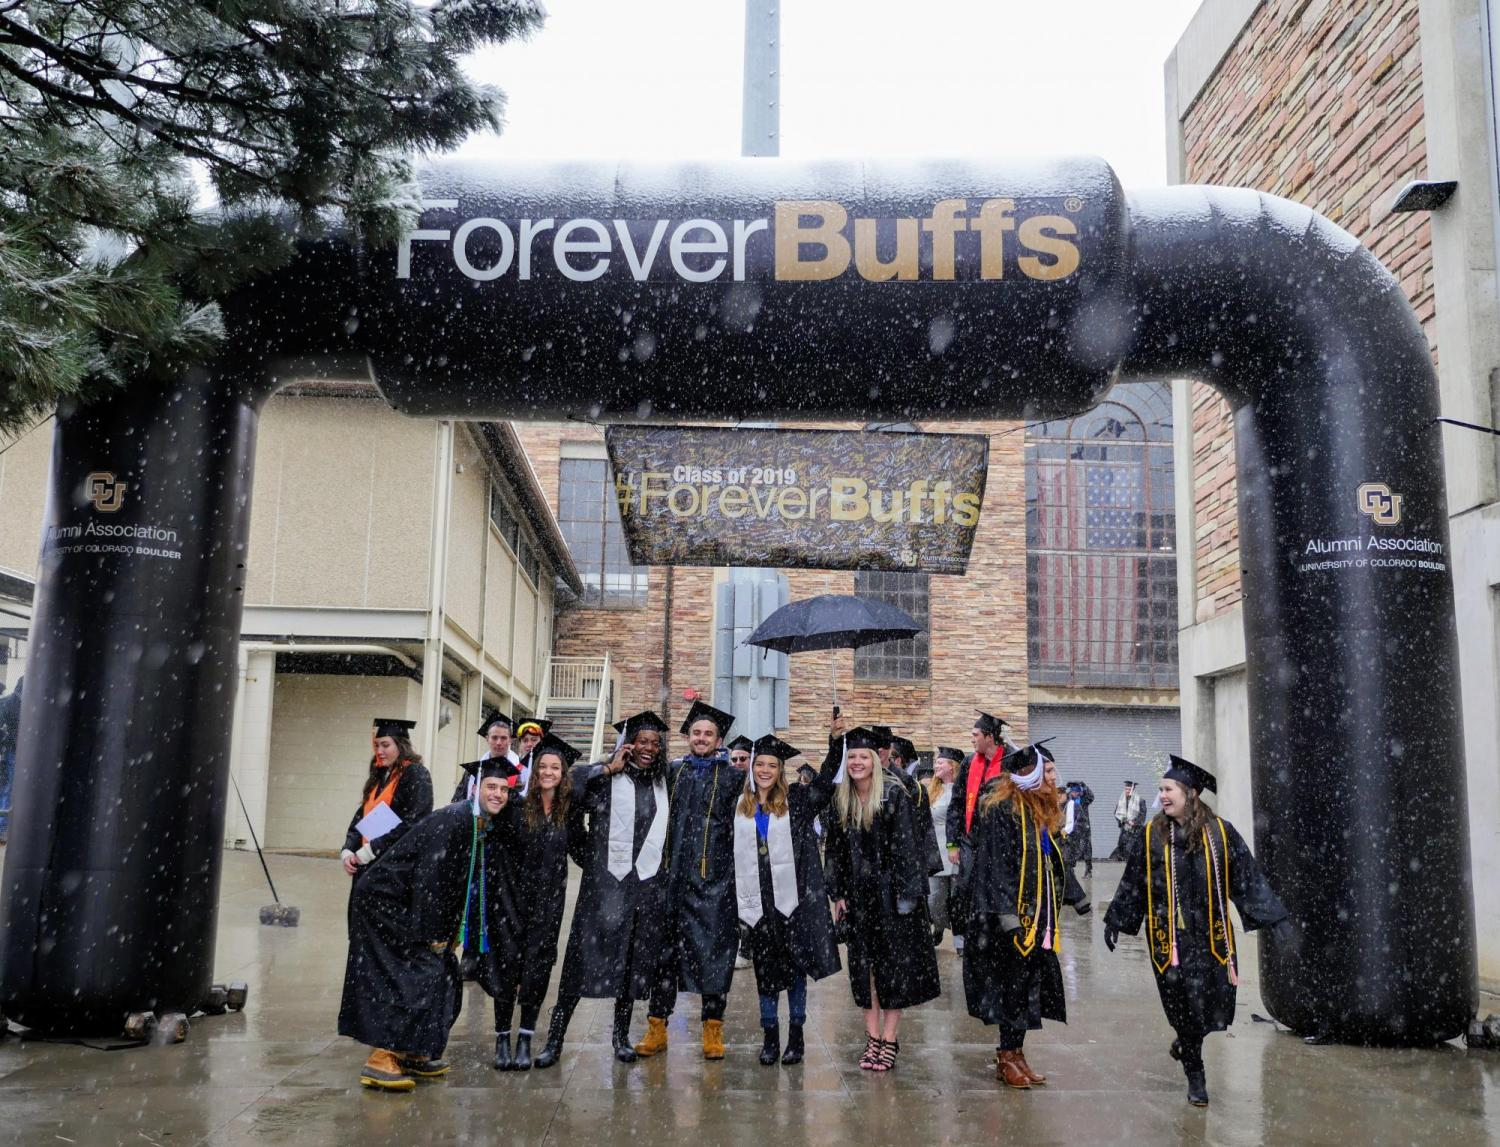 Graduates pose for a photo under a blow-up Forever Buffs arch